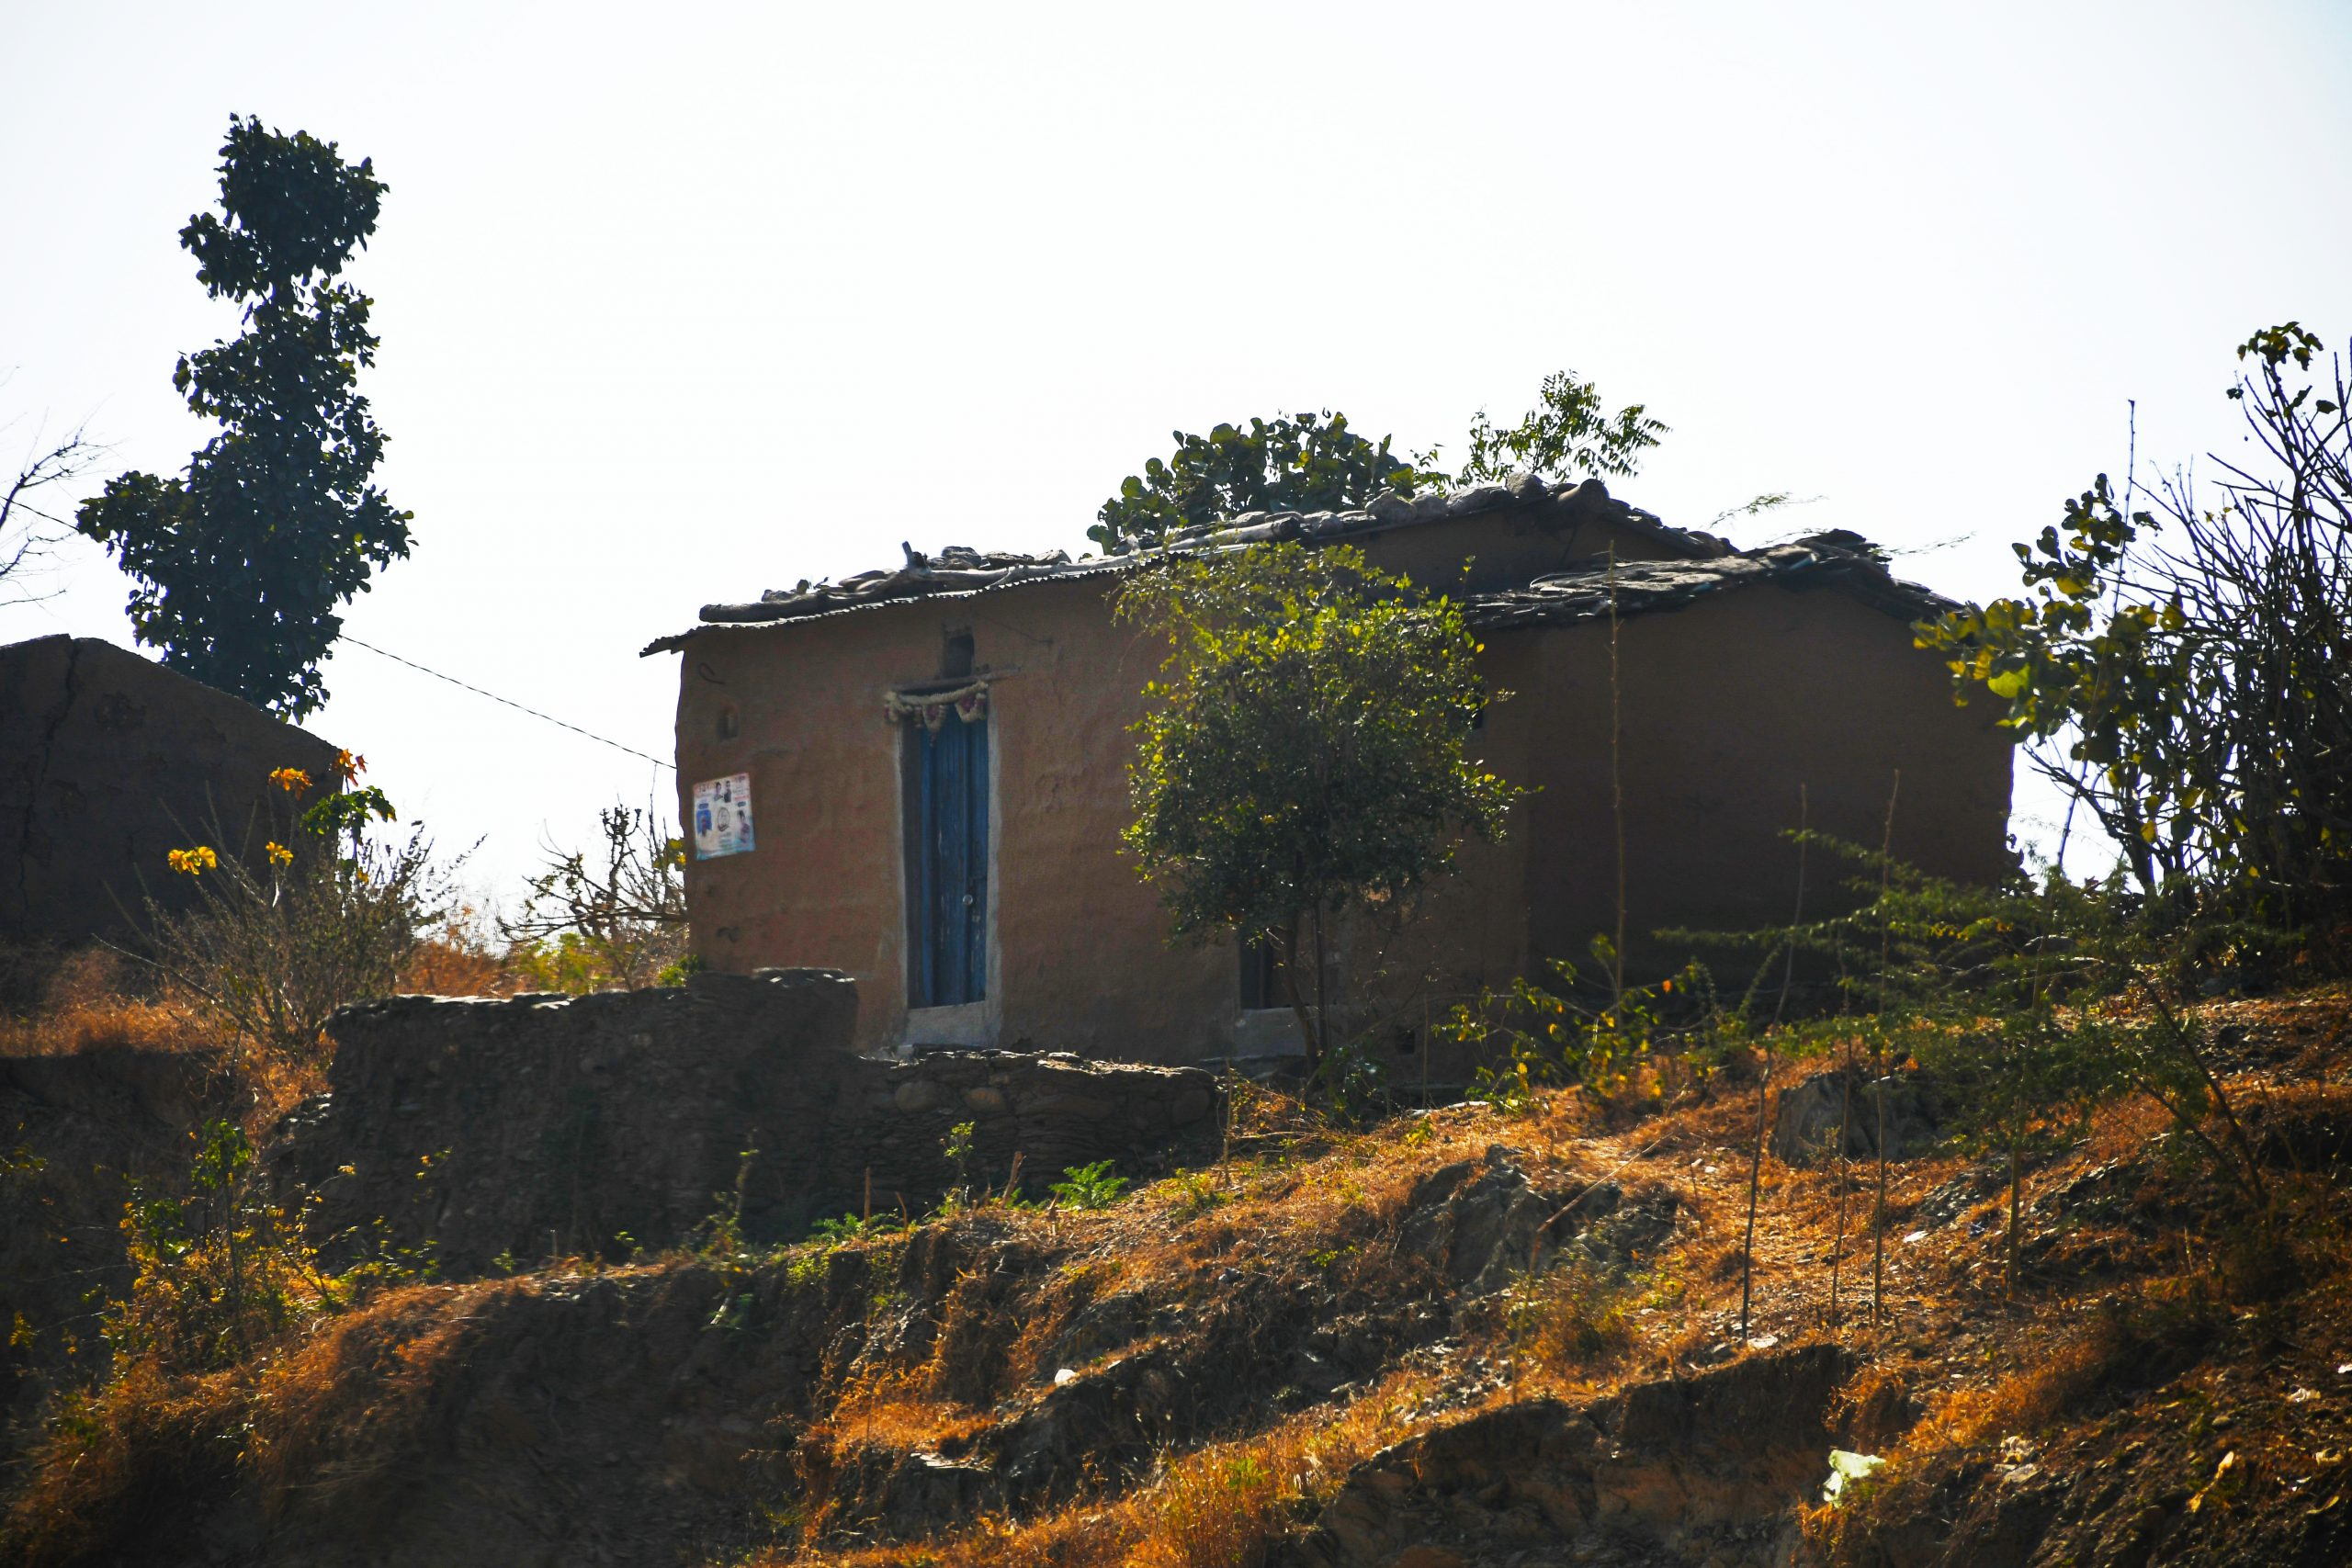 A house in a village